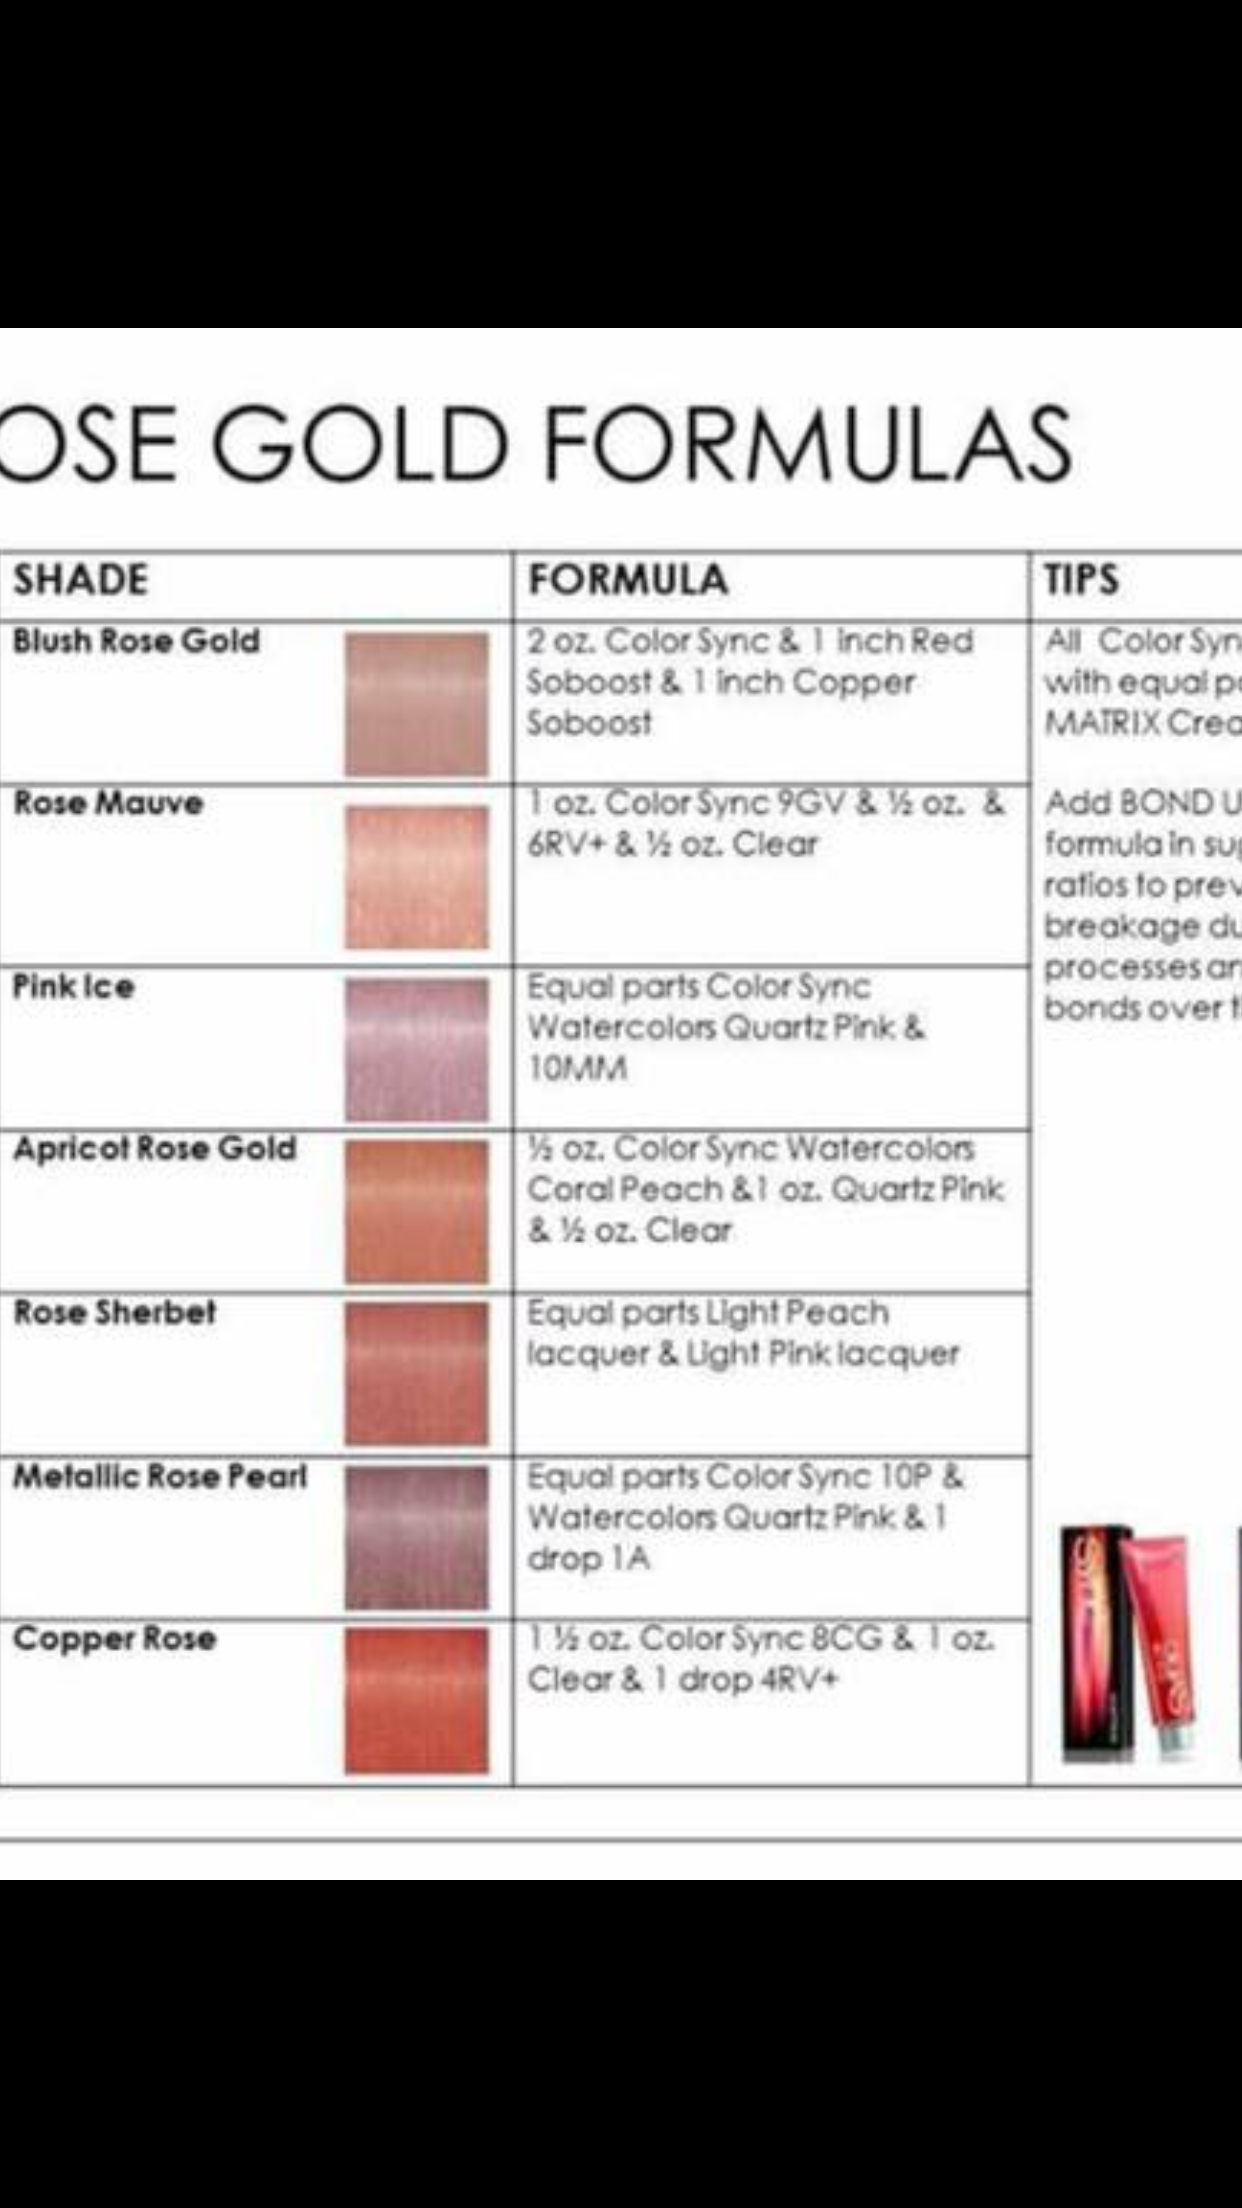 Rose gold matrix formulas hair skin and nails pinterest rose rose gold matrix formulas nvjuhfo Gallery